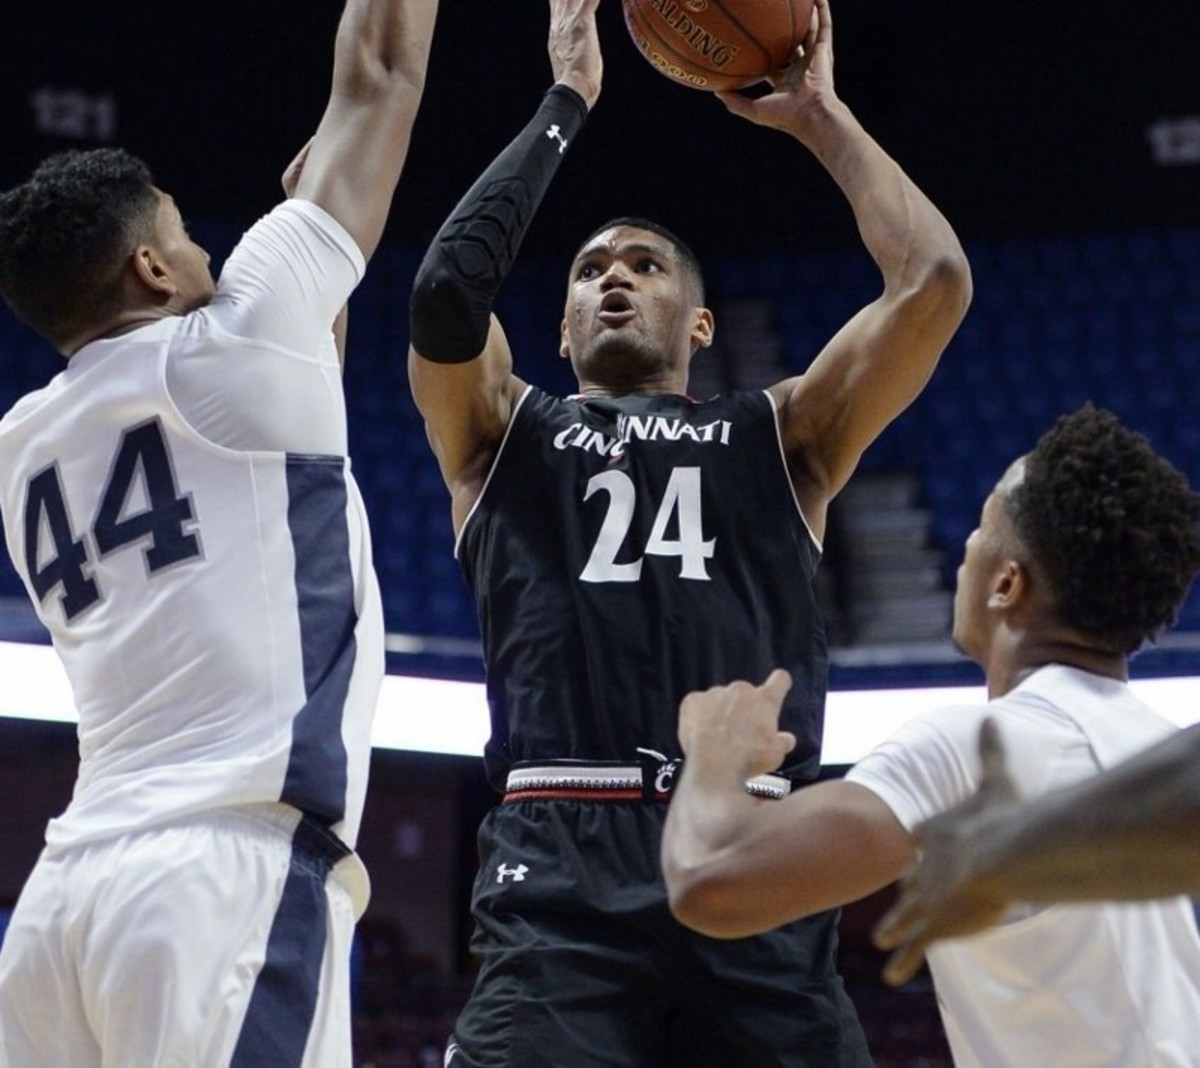 Kyle Washington fit in right away after transferring from NC State.